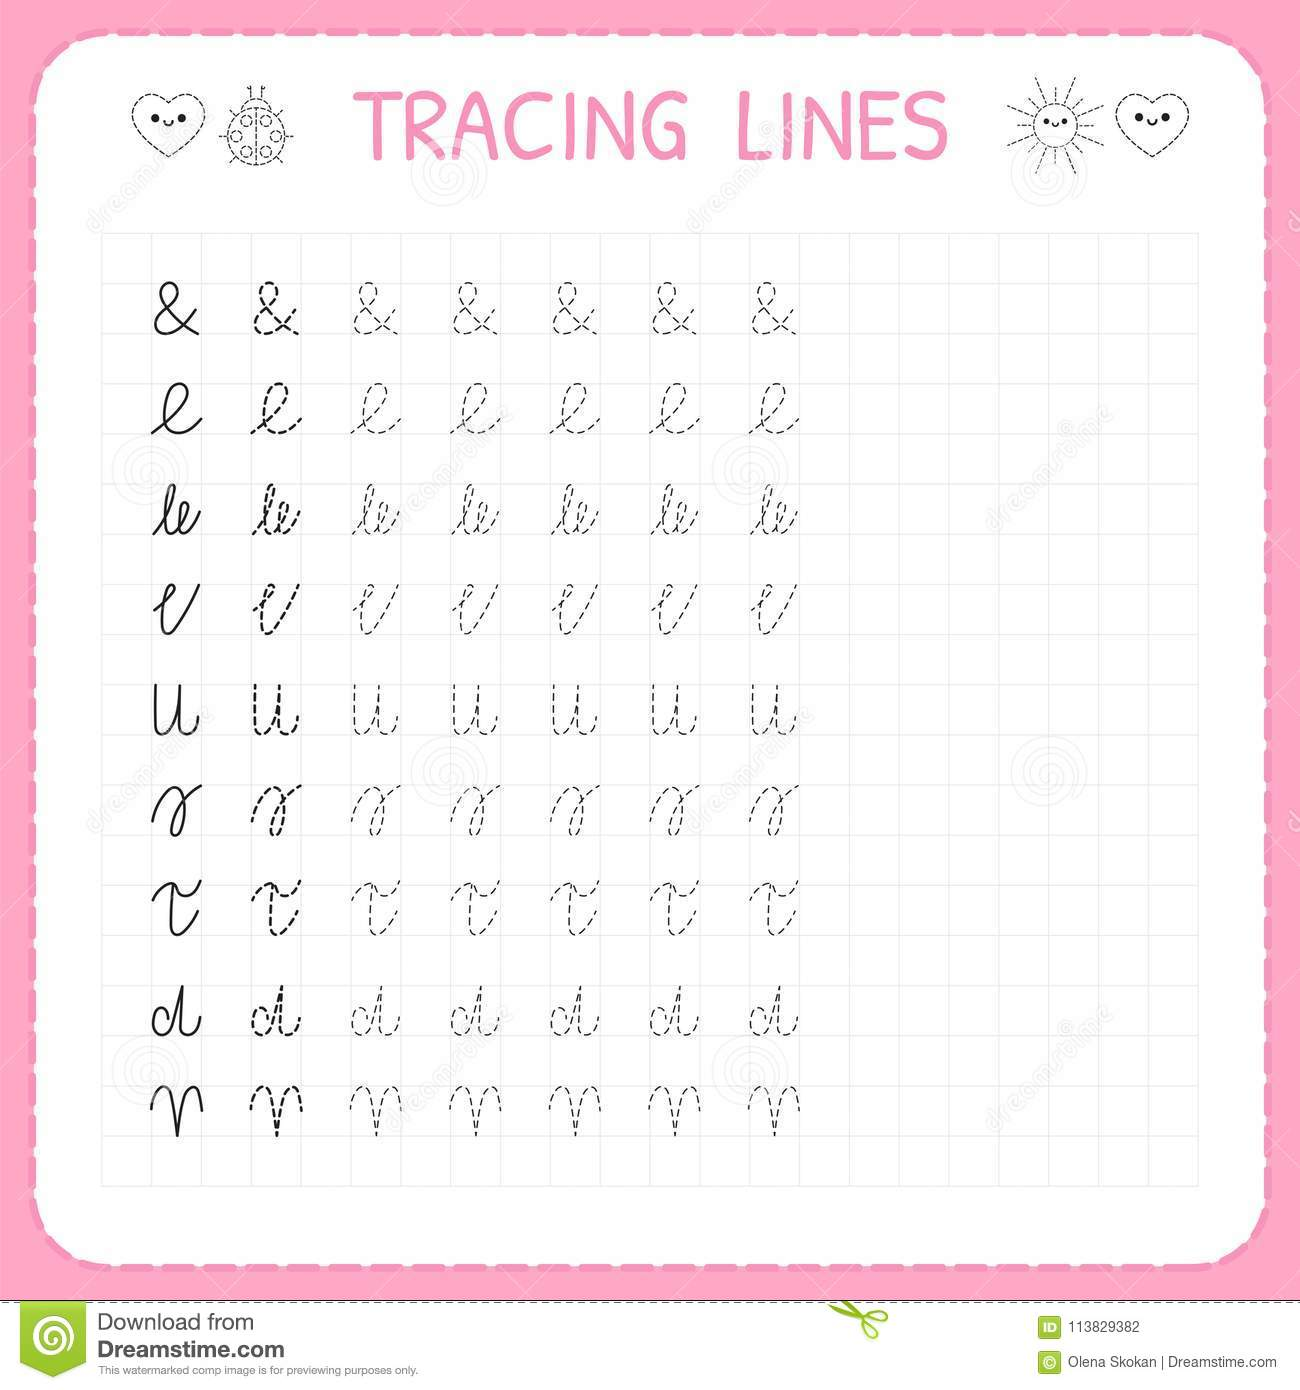 Tracing lines basic writing worksheet for kids working pages for basic writing worksheet for kids working pages for children preschool ibookread Download